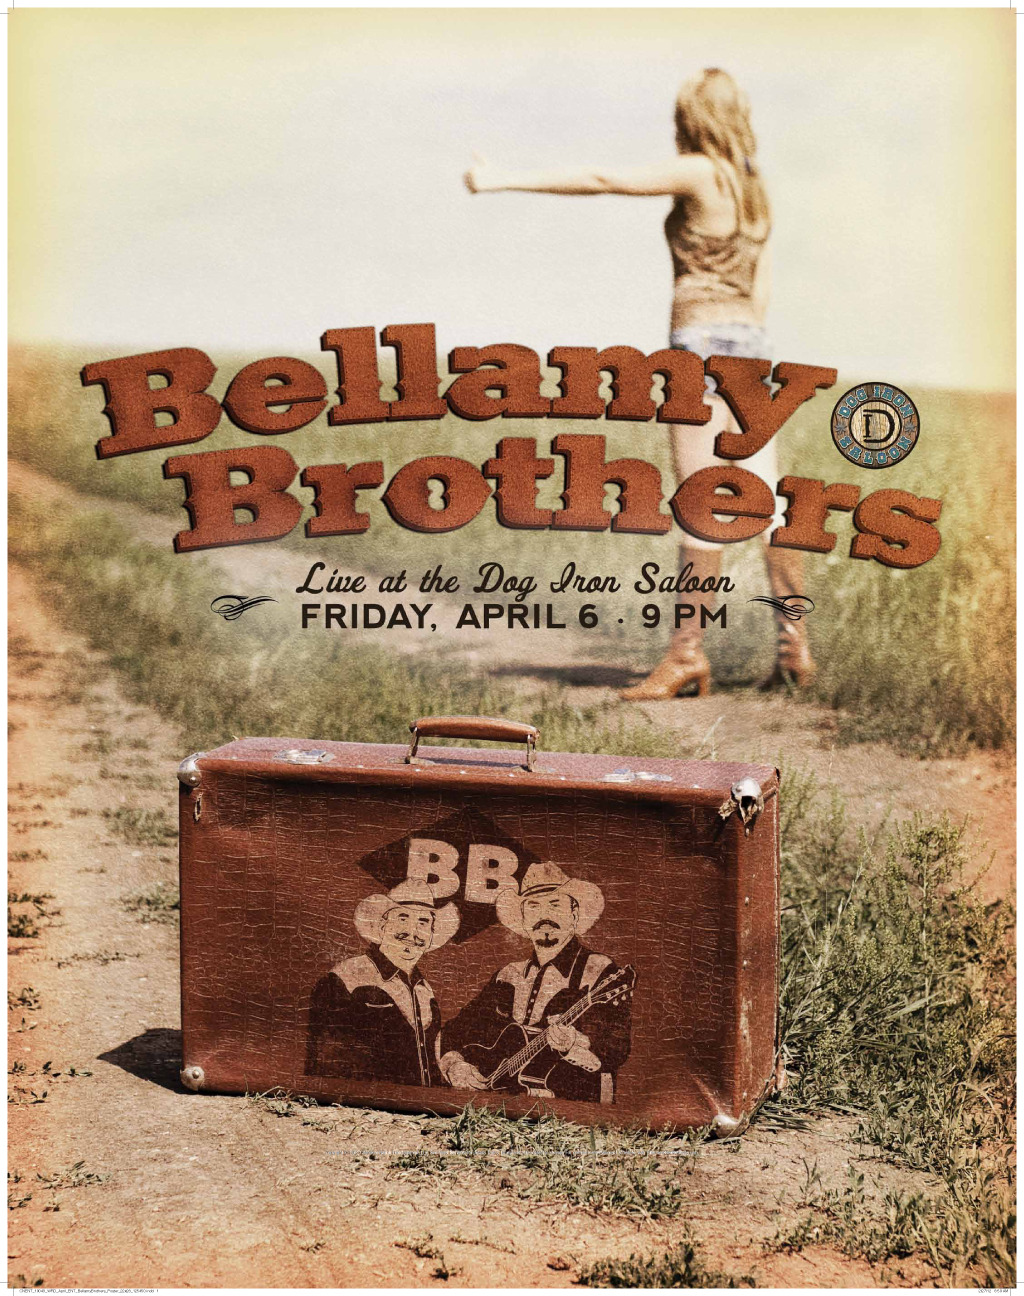 Bellamy Brothers poster I designed. Knowing little of the group itself, I researched their hits. 'Redneck Girl' was a popular one among their fan base it seemed, so I thought of a hitchhiking concept. Country music, to me, lends it'self to a rustic, vintage feel. So, naturally, I aged the poster with color fading on the edges. Had fun with the Bellamy Brothers typography too. All in all had fun working on this project.